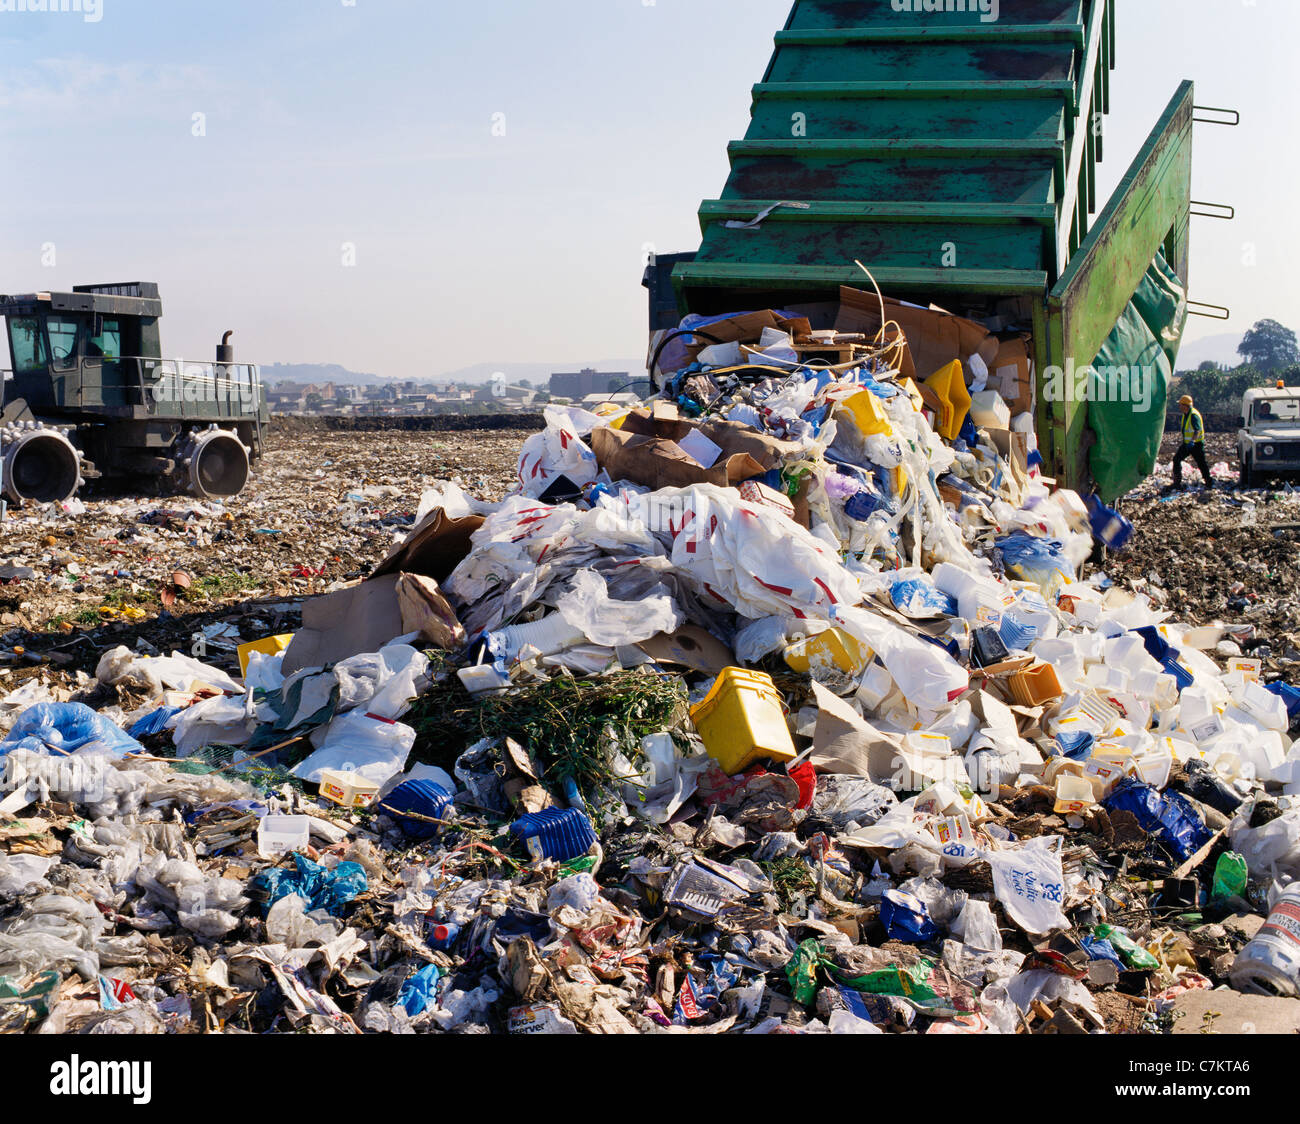 Landfill waste disposal site at Hempsted, Gloucester - Stock Image